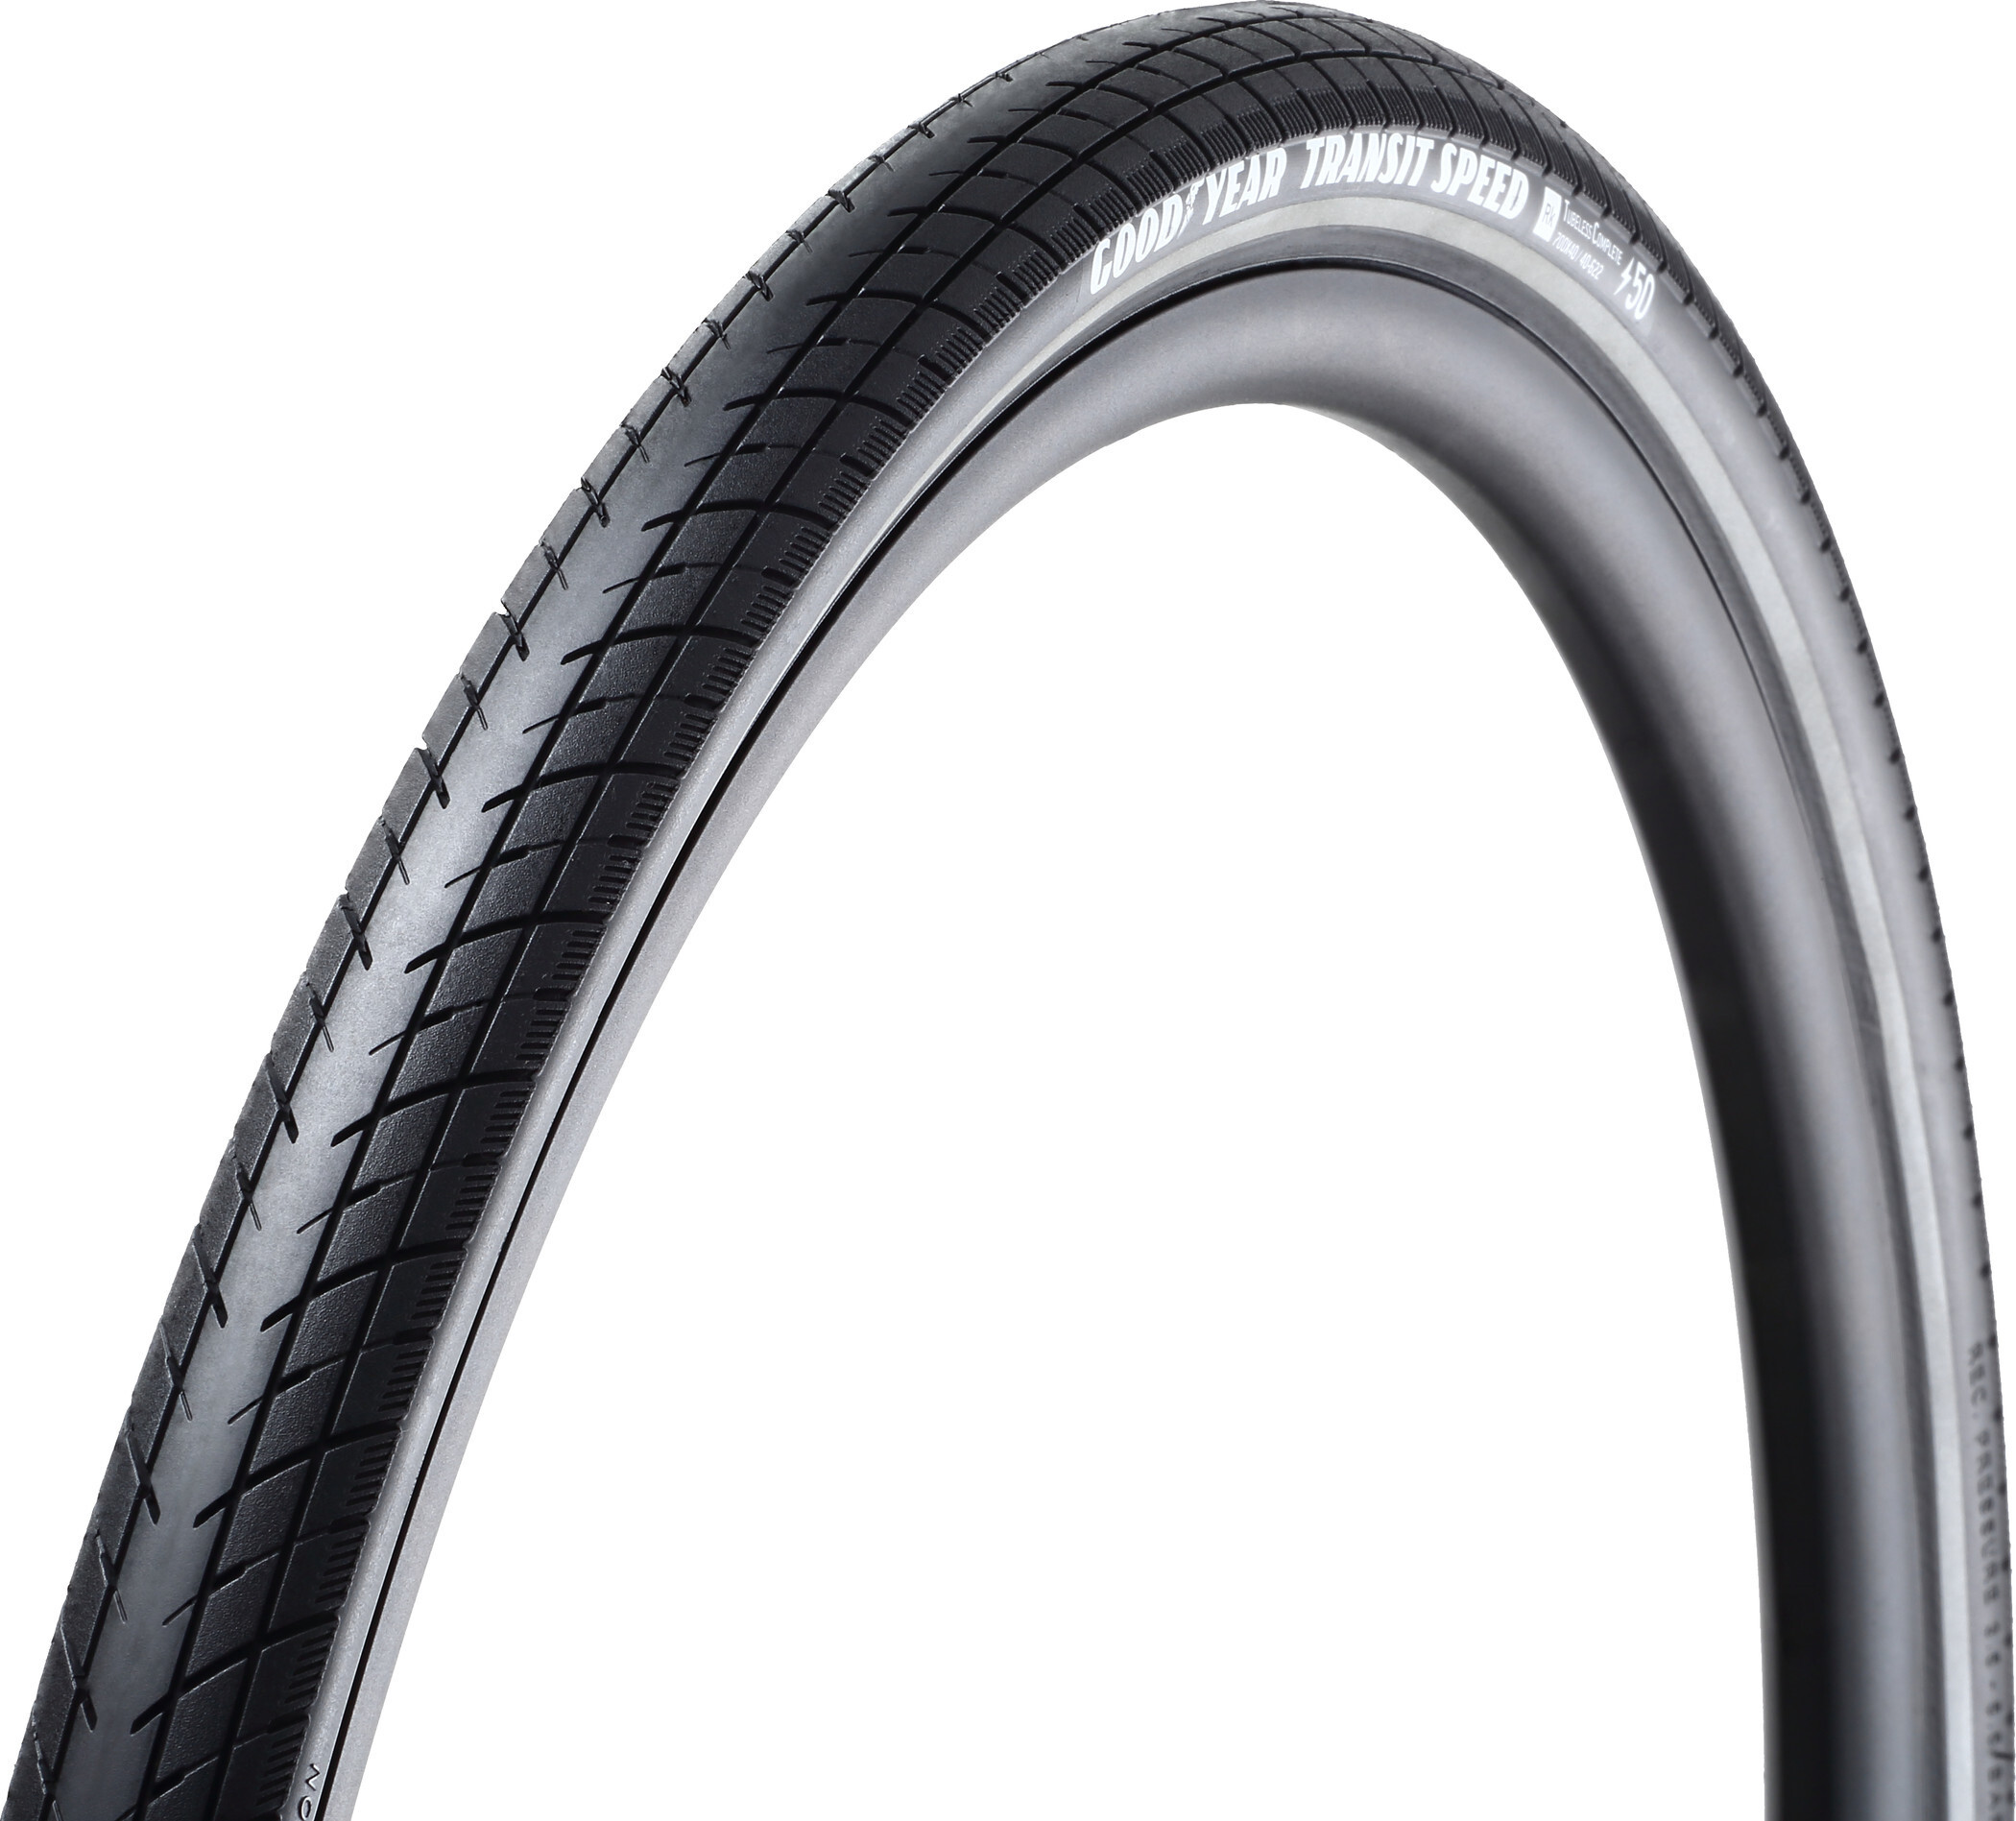 Goodyear Transit Speed Dæk 35-622 S3 Shell e50, black reflected (2019)   Tyres